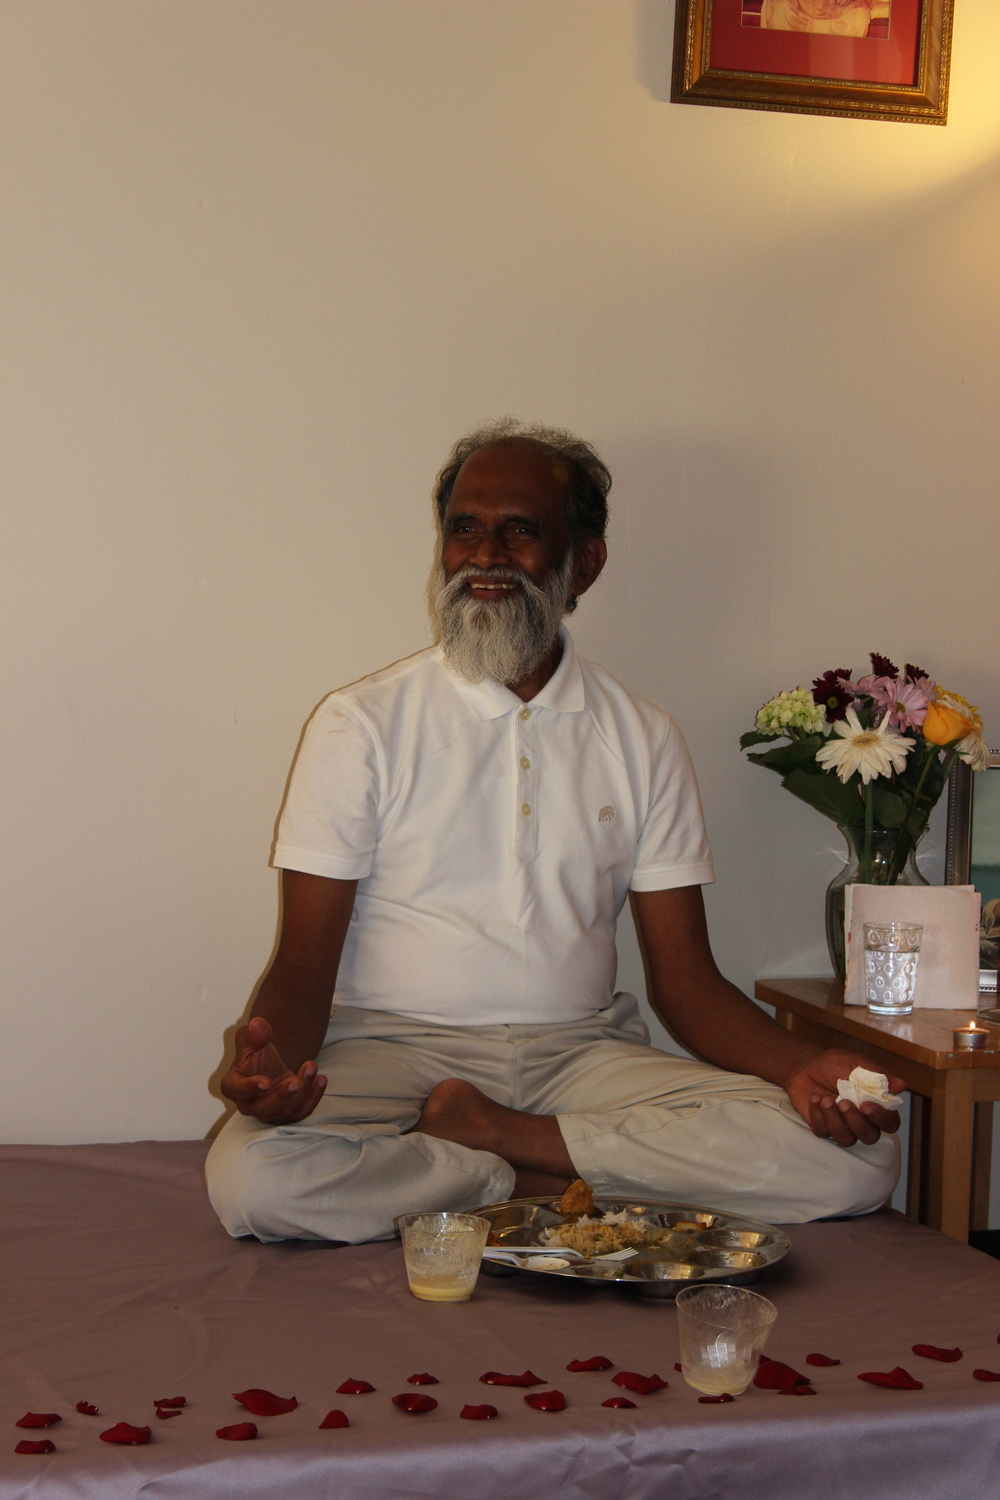 Shri Yogi Hari Maharaj - Master of Hatha, Nada, and Raja Yoga. Founder of Sampoorna Yoga.